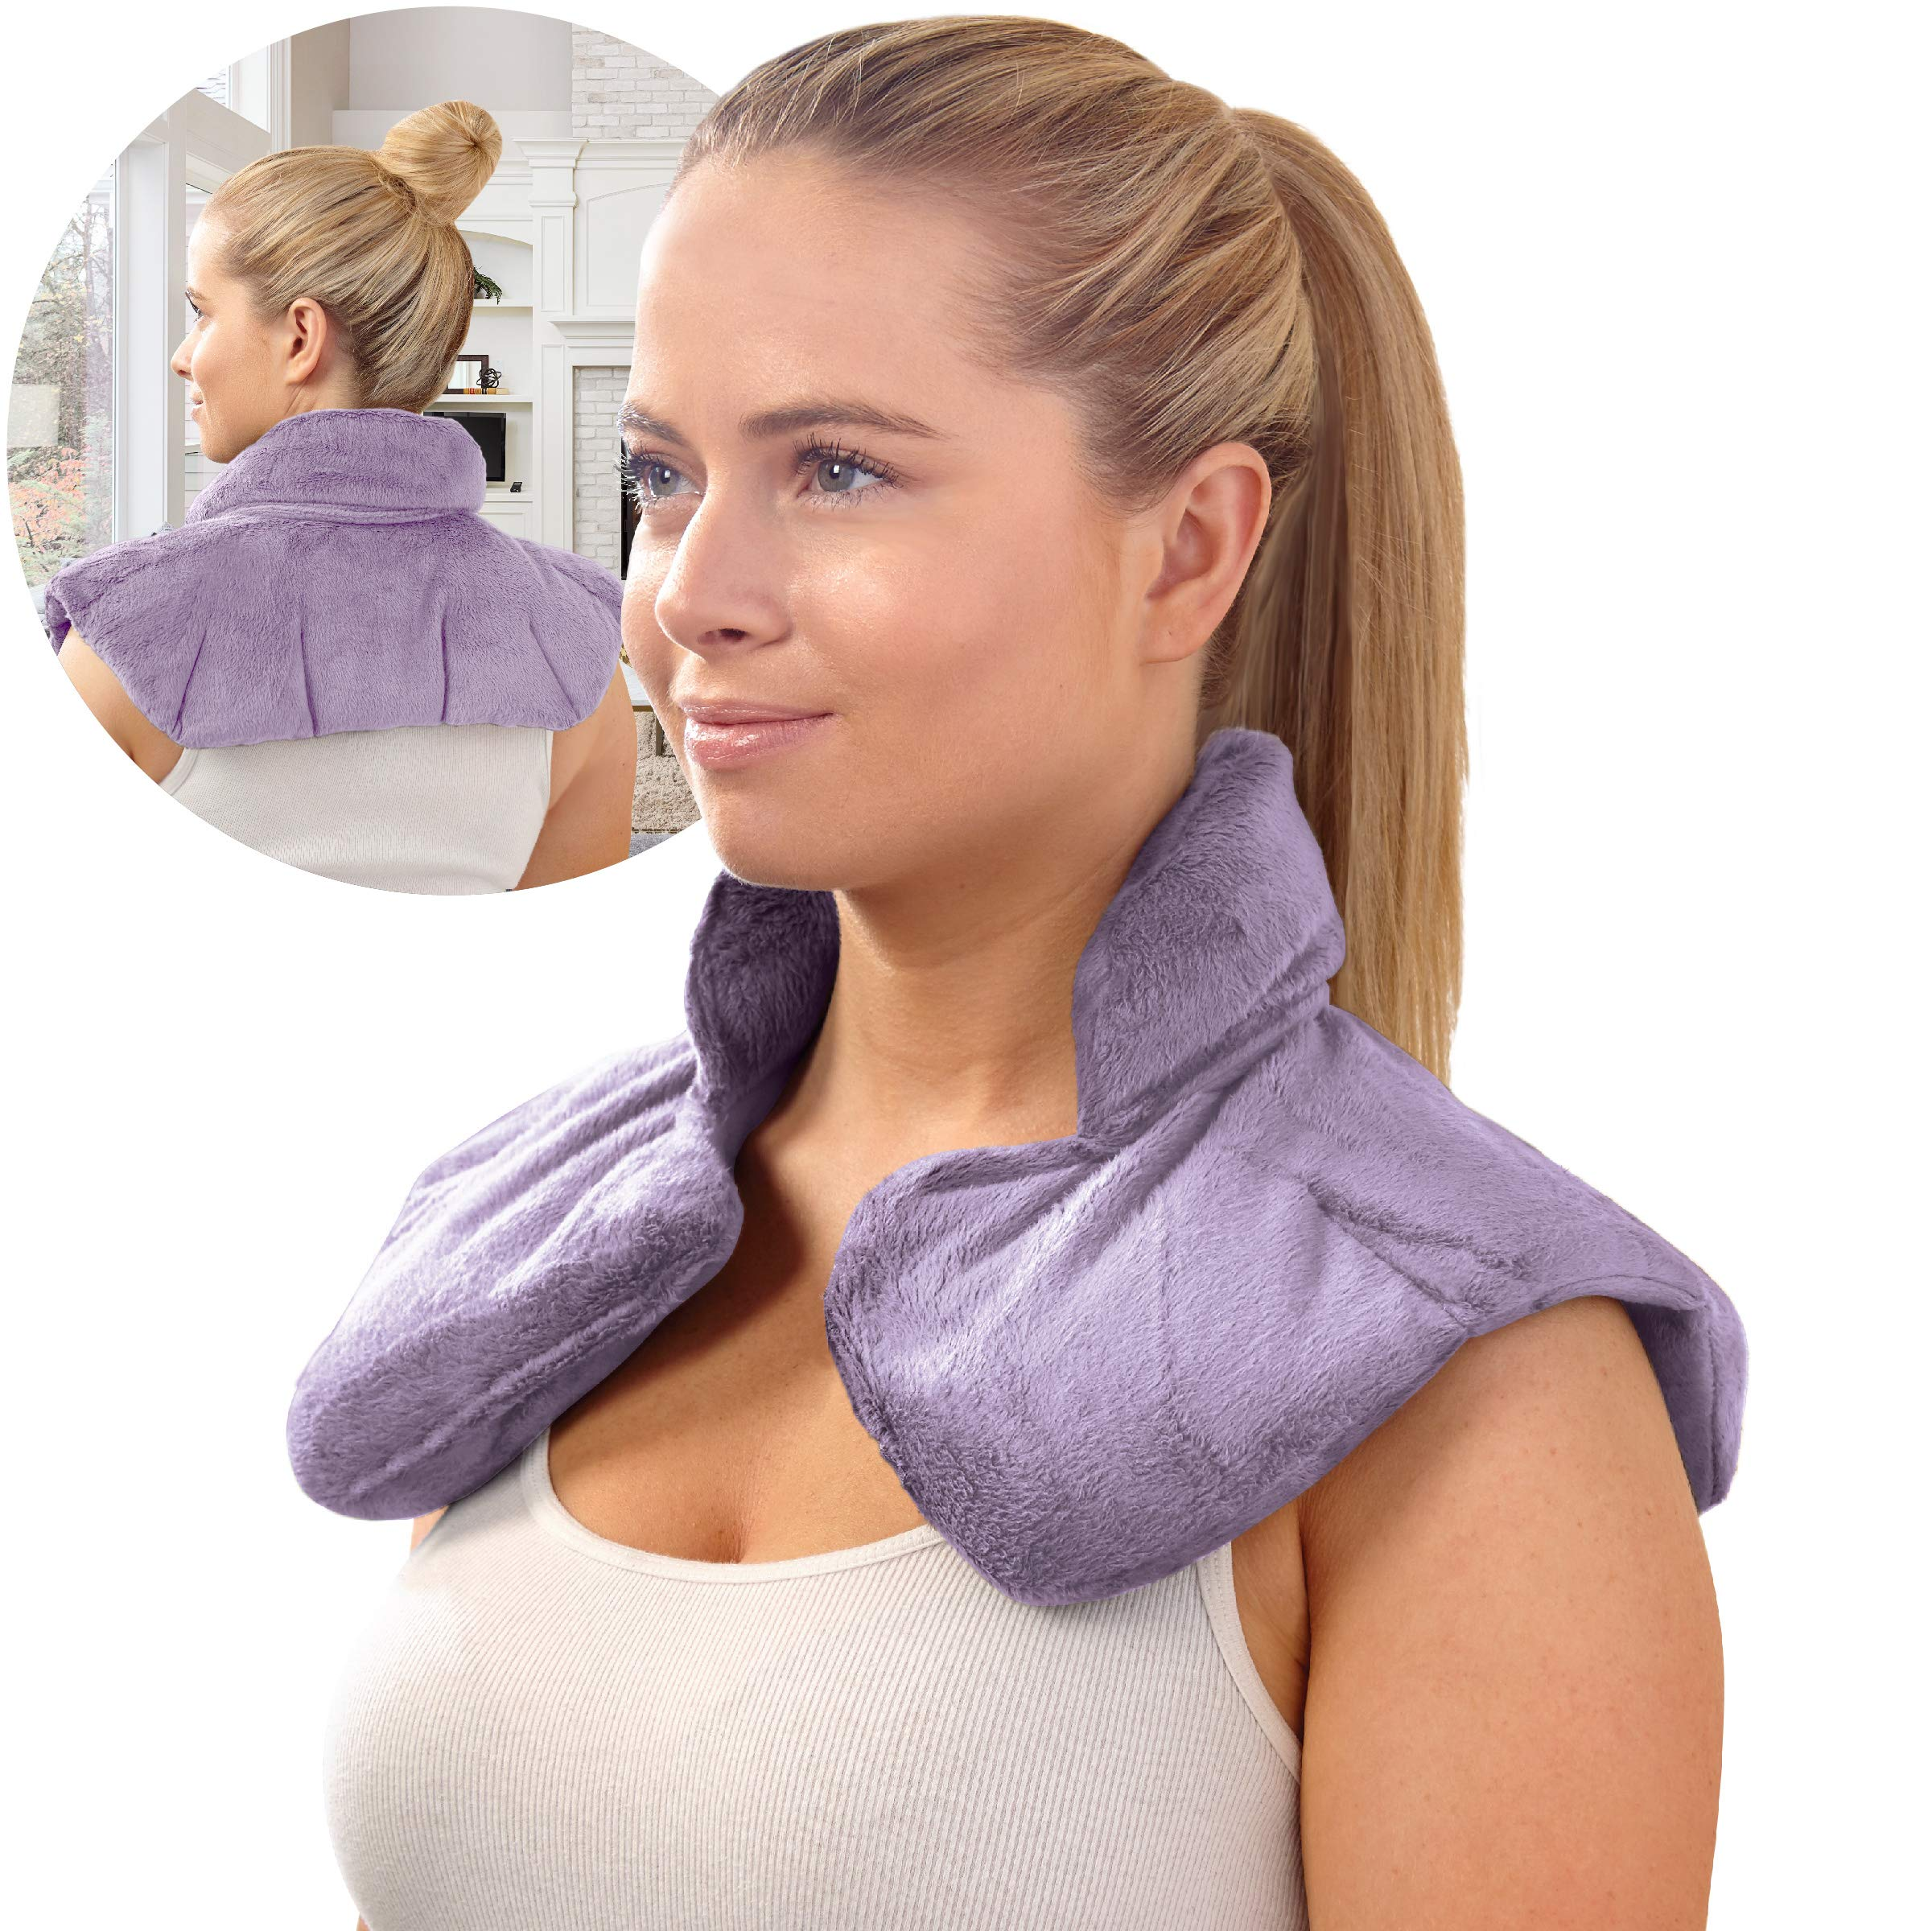 SHARPER IMAGE Hot & Cold Herbal Aromatherapy Neck & Shoulder Plush Wrap Pad for Soothing Muscle Pain and Tension Relief Therapy, 100% Natural Lavender & Herb Spa Blend, Use in Microwave or Freezer by Sharper Image